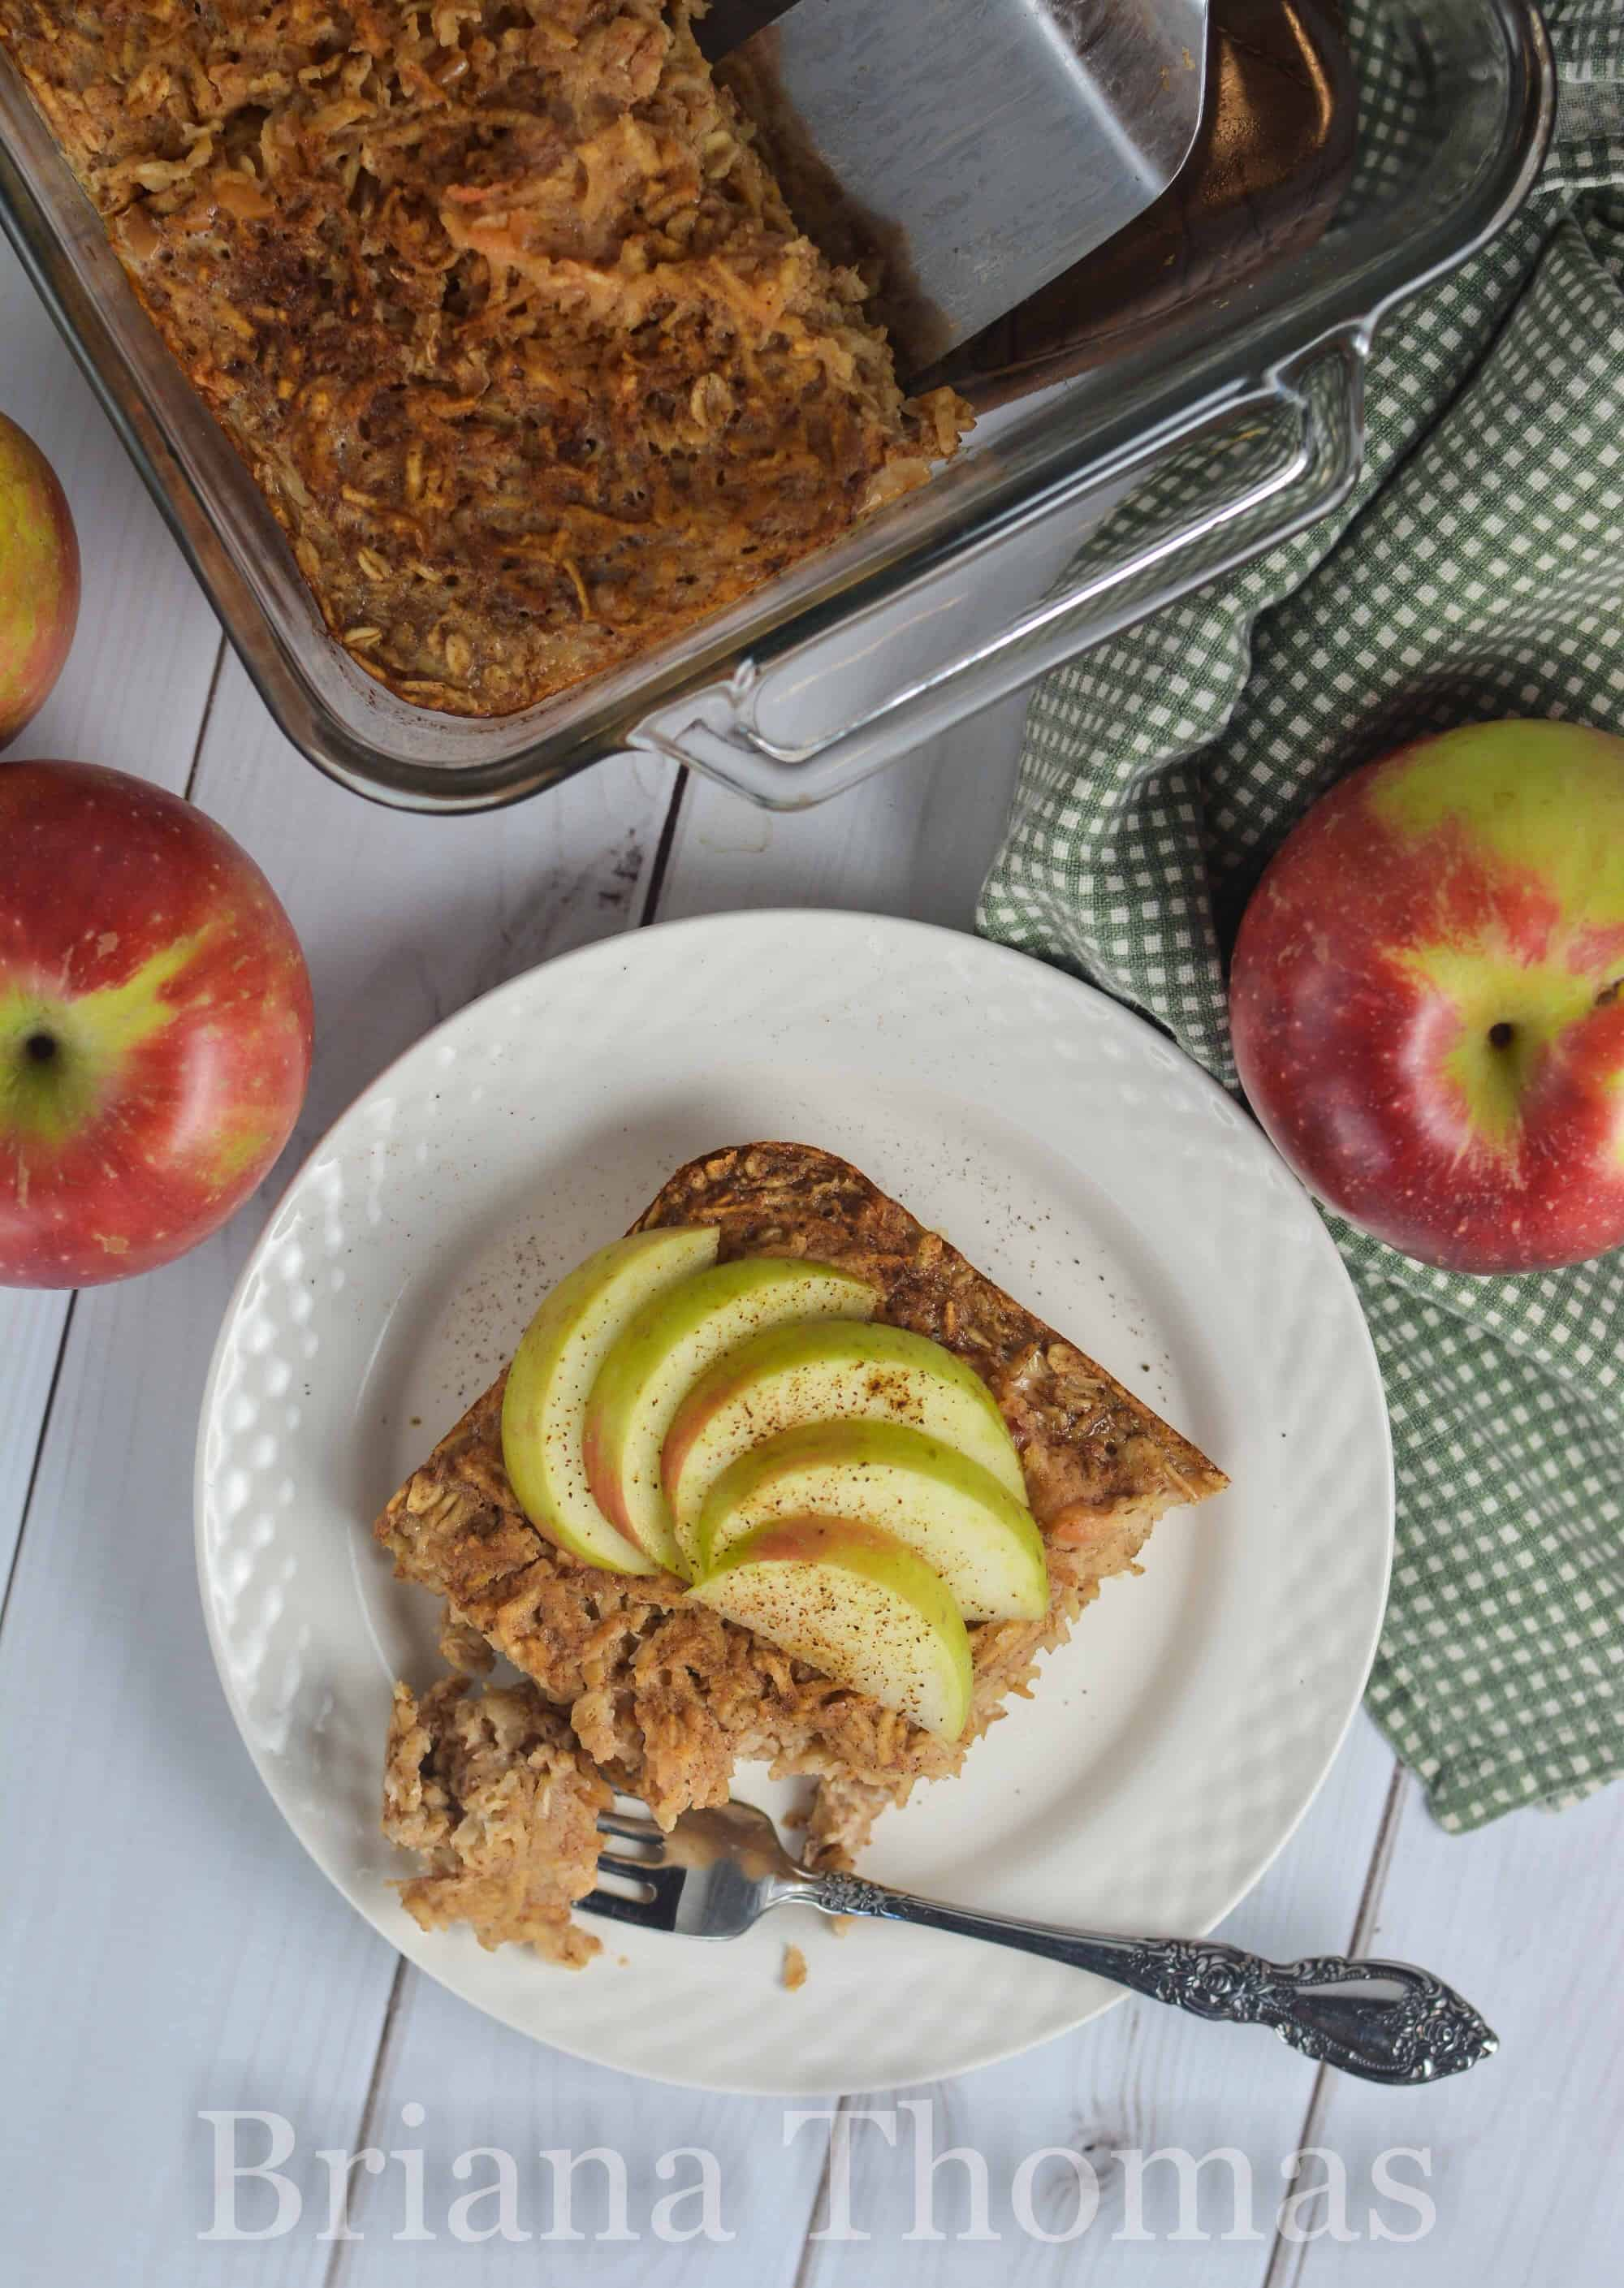 Looking for healthy Trim Healthy Mama Breakfast recipes? Here is a great roundup that includes breakfasts of all fuel types. Smoothies, Shakes, Eggs, Waffles, Biscuits, THM Breakfast Casseroles, and more! #trimhealthymam #thm #thmbreakfast #healthybreakfast #breakfastideas #breakfastrecipes